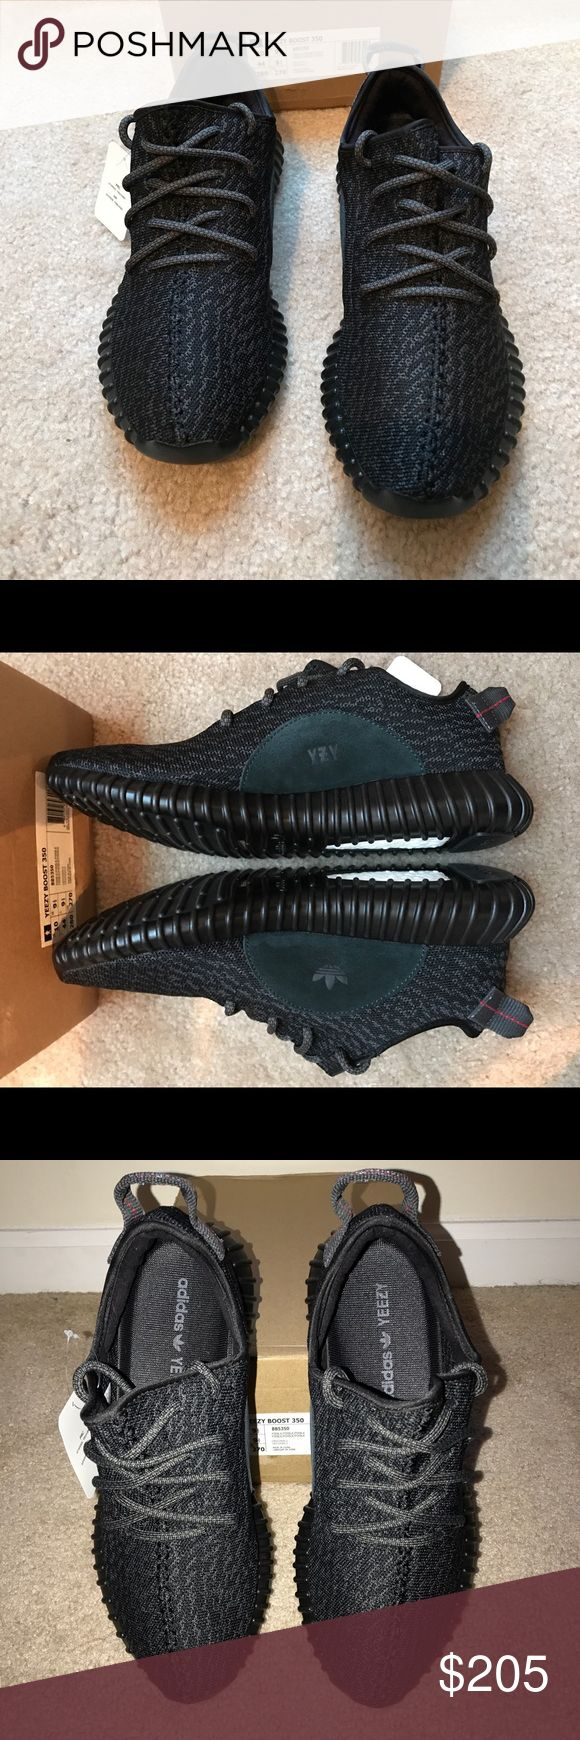 "Yeezy Boost 350 ""Pirate Black"" Yeezy Boost 350 ""Pirate Black""  Men's Size 10 Yeezy Shoes Sneakers"